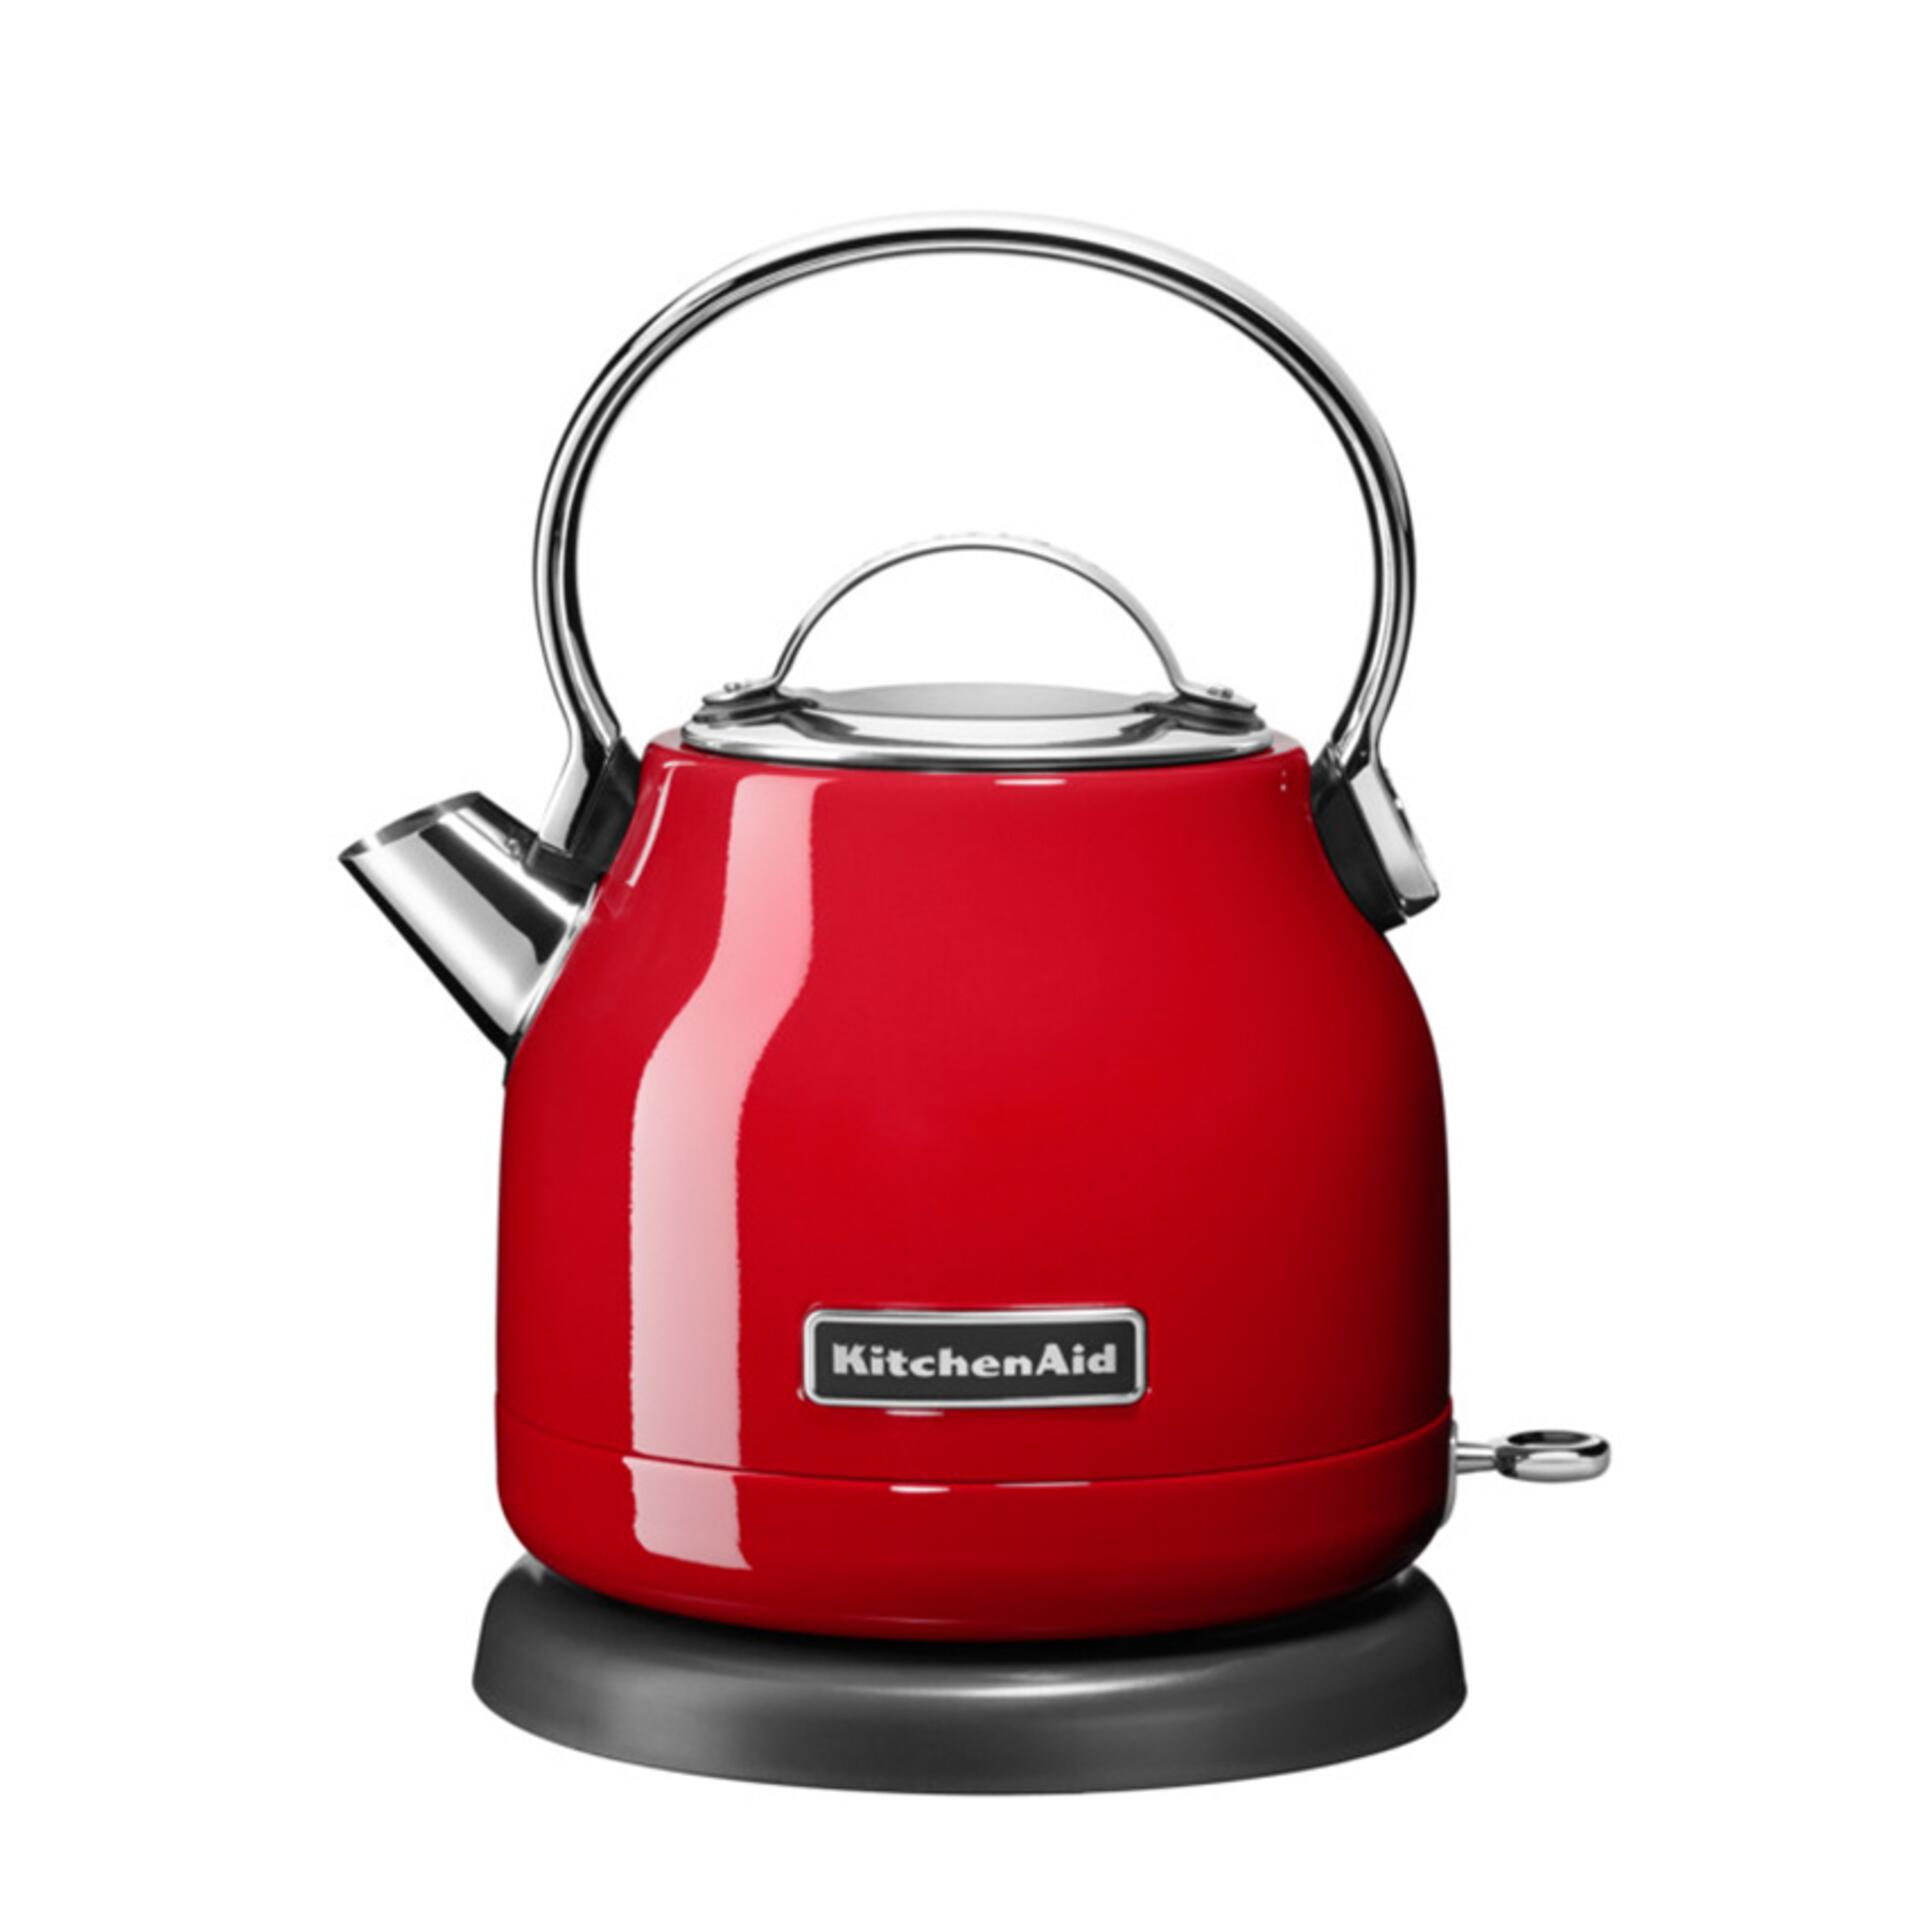 KitchenAid Classic Wasserkocher Empire Red 5KEK1222EER